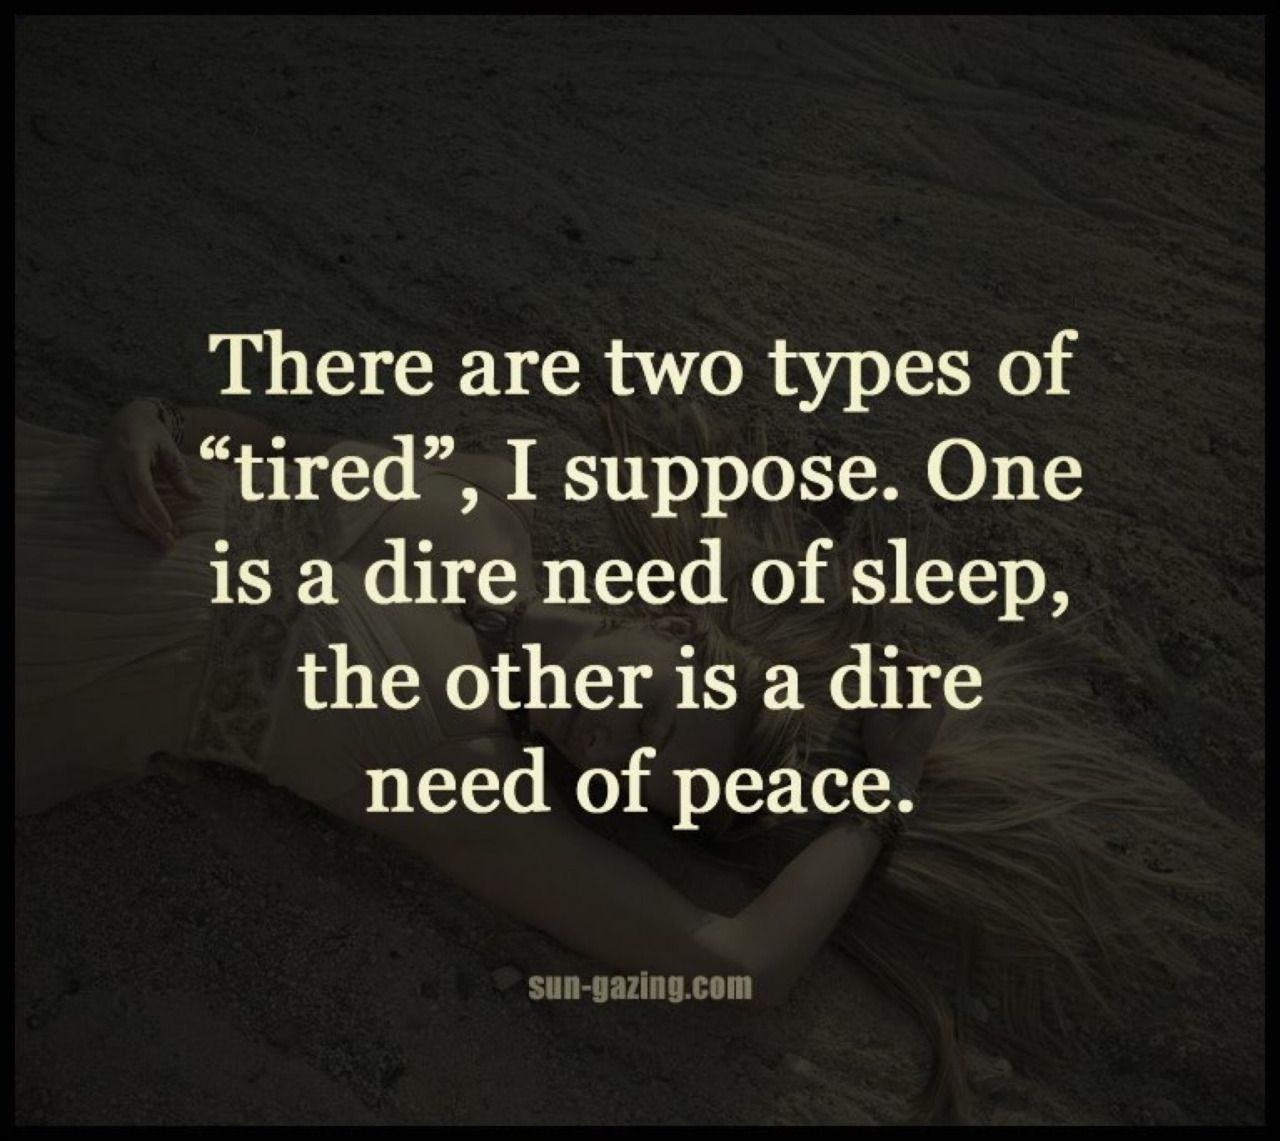 Quotes about being sick in bed funny quotes about being sick in bed - Peace